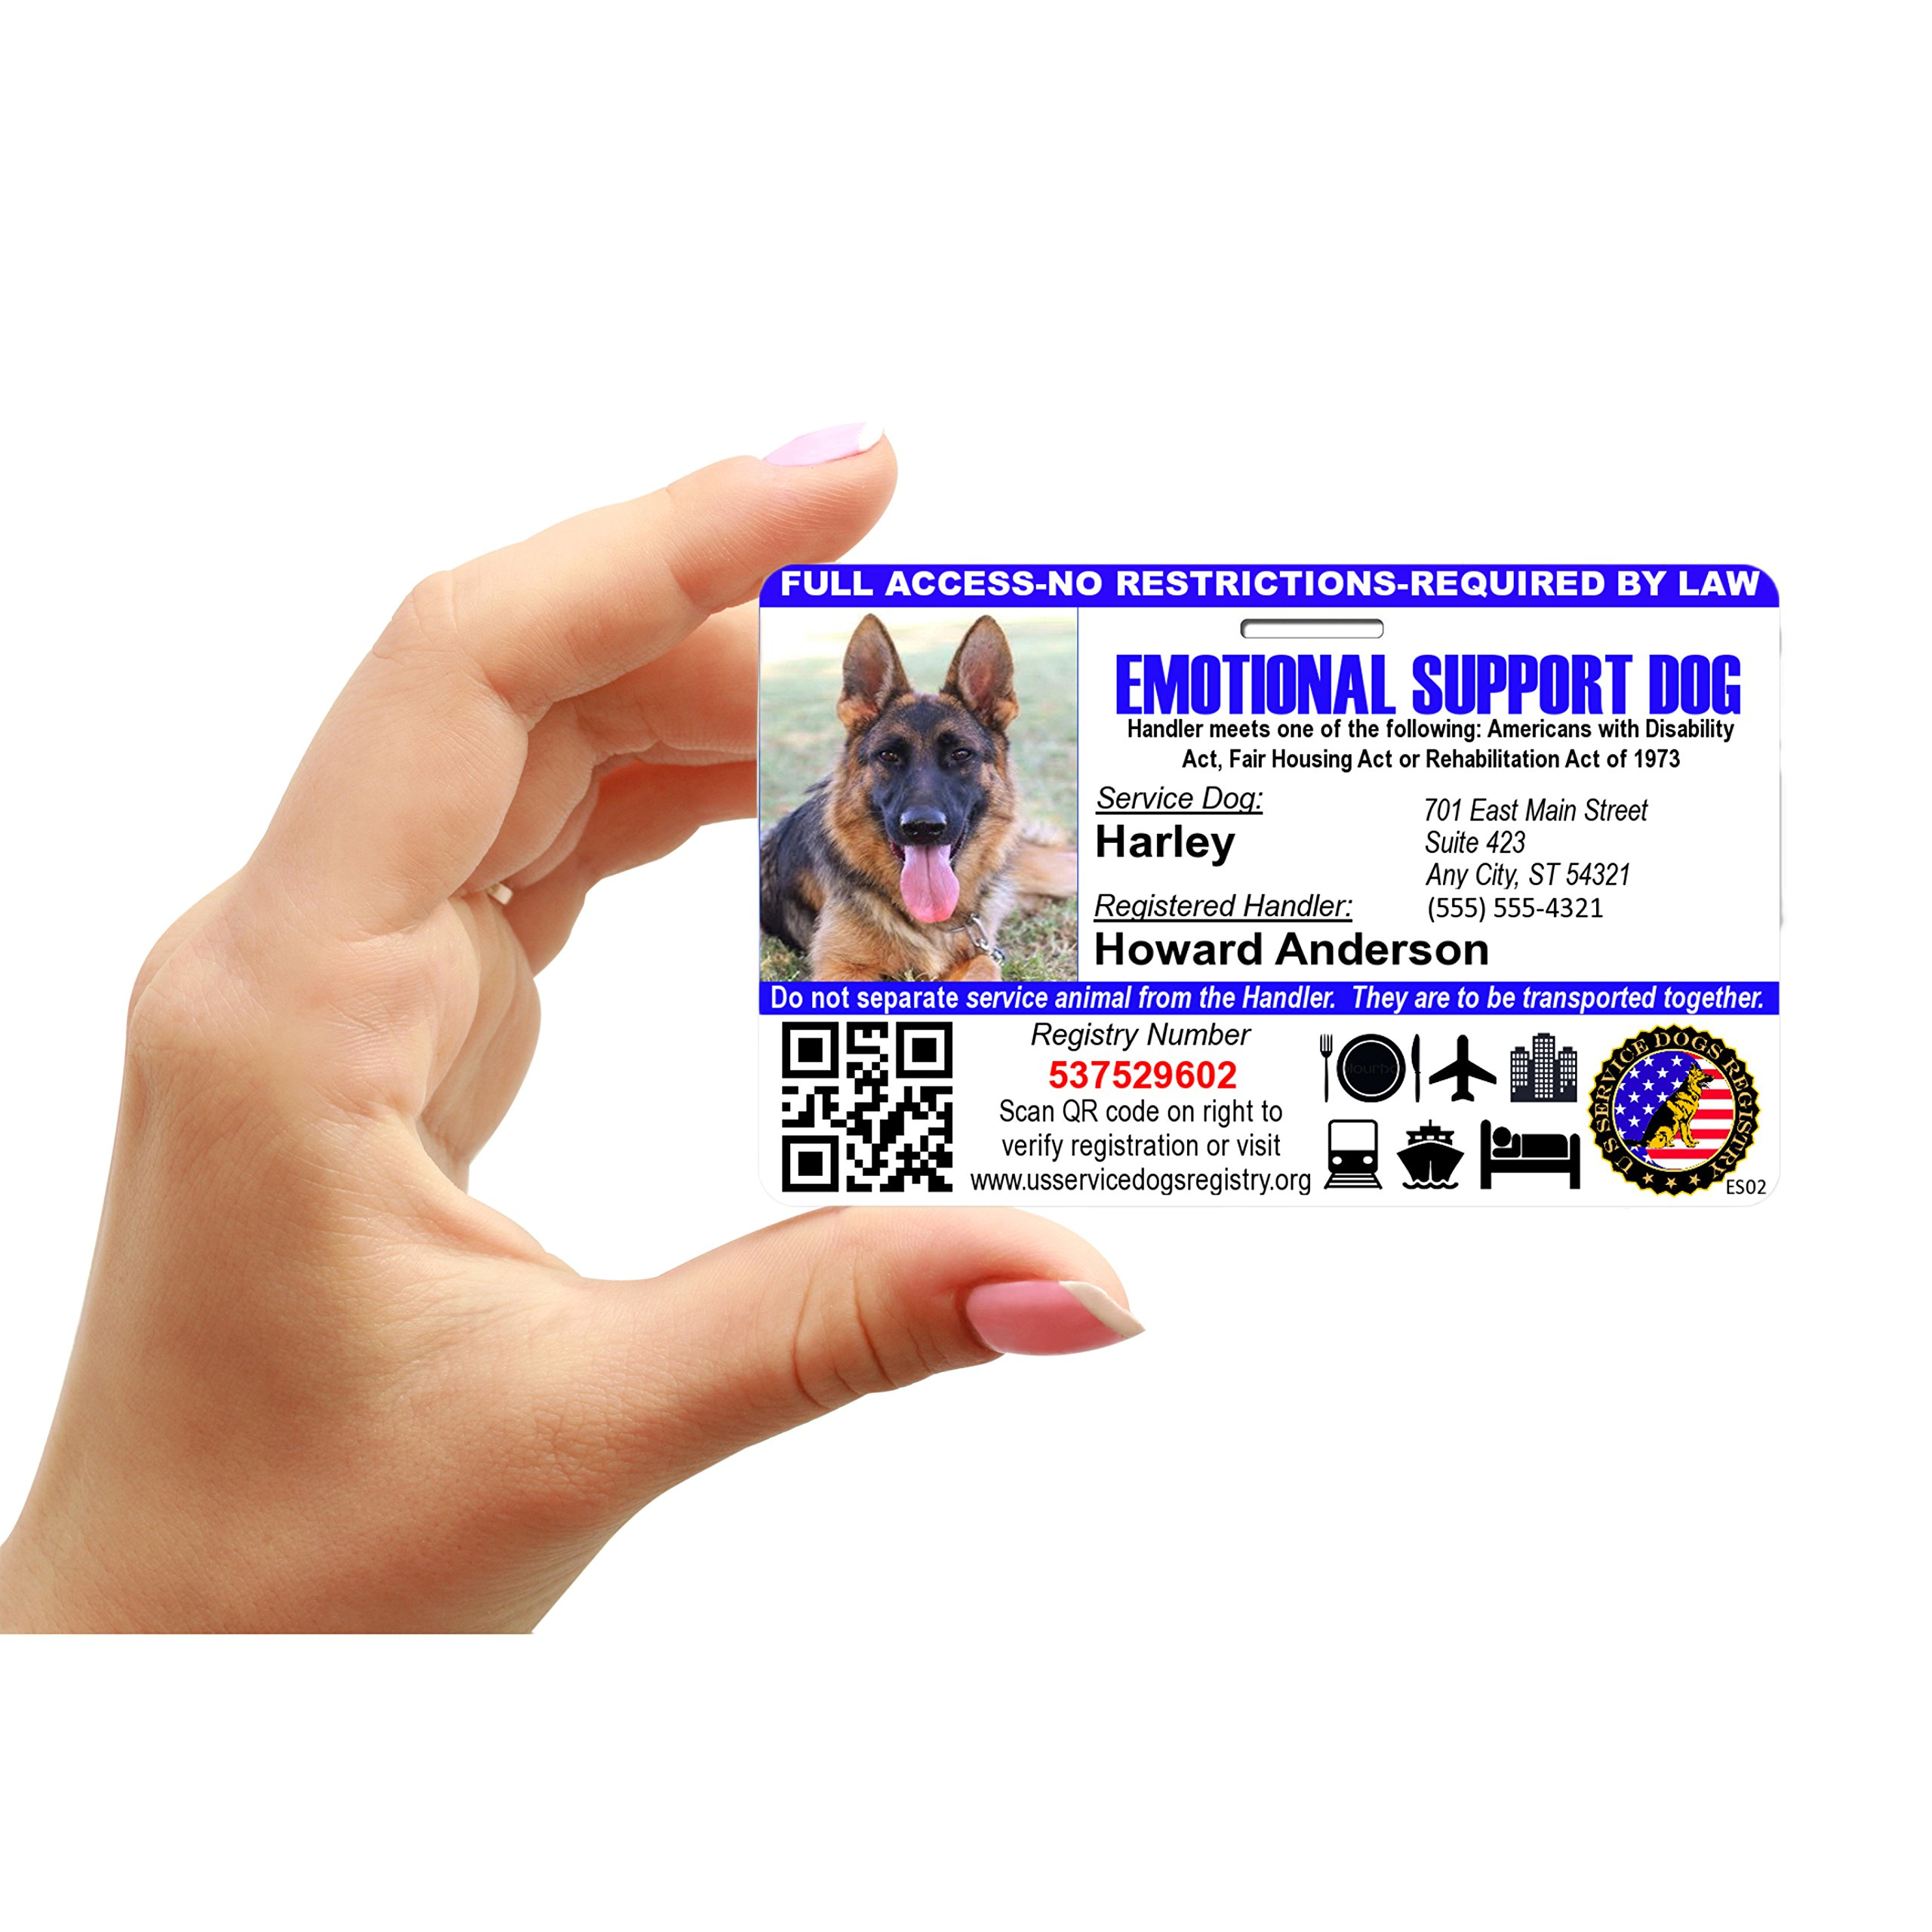 Just 4 Paws Custom Holographic QR Code Emotional Support Dog ID Card with Registration to Service Dogs Registry with Strap - Landscape Style by Just 4 Paws (Image #4)